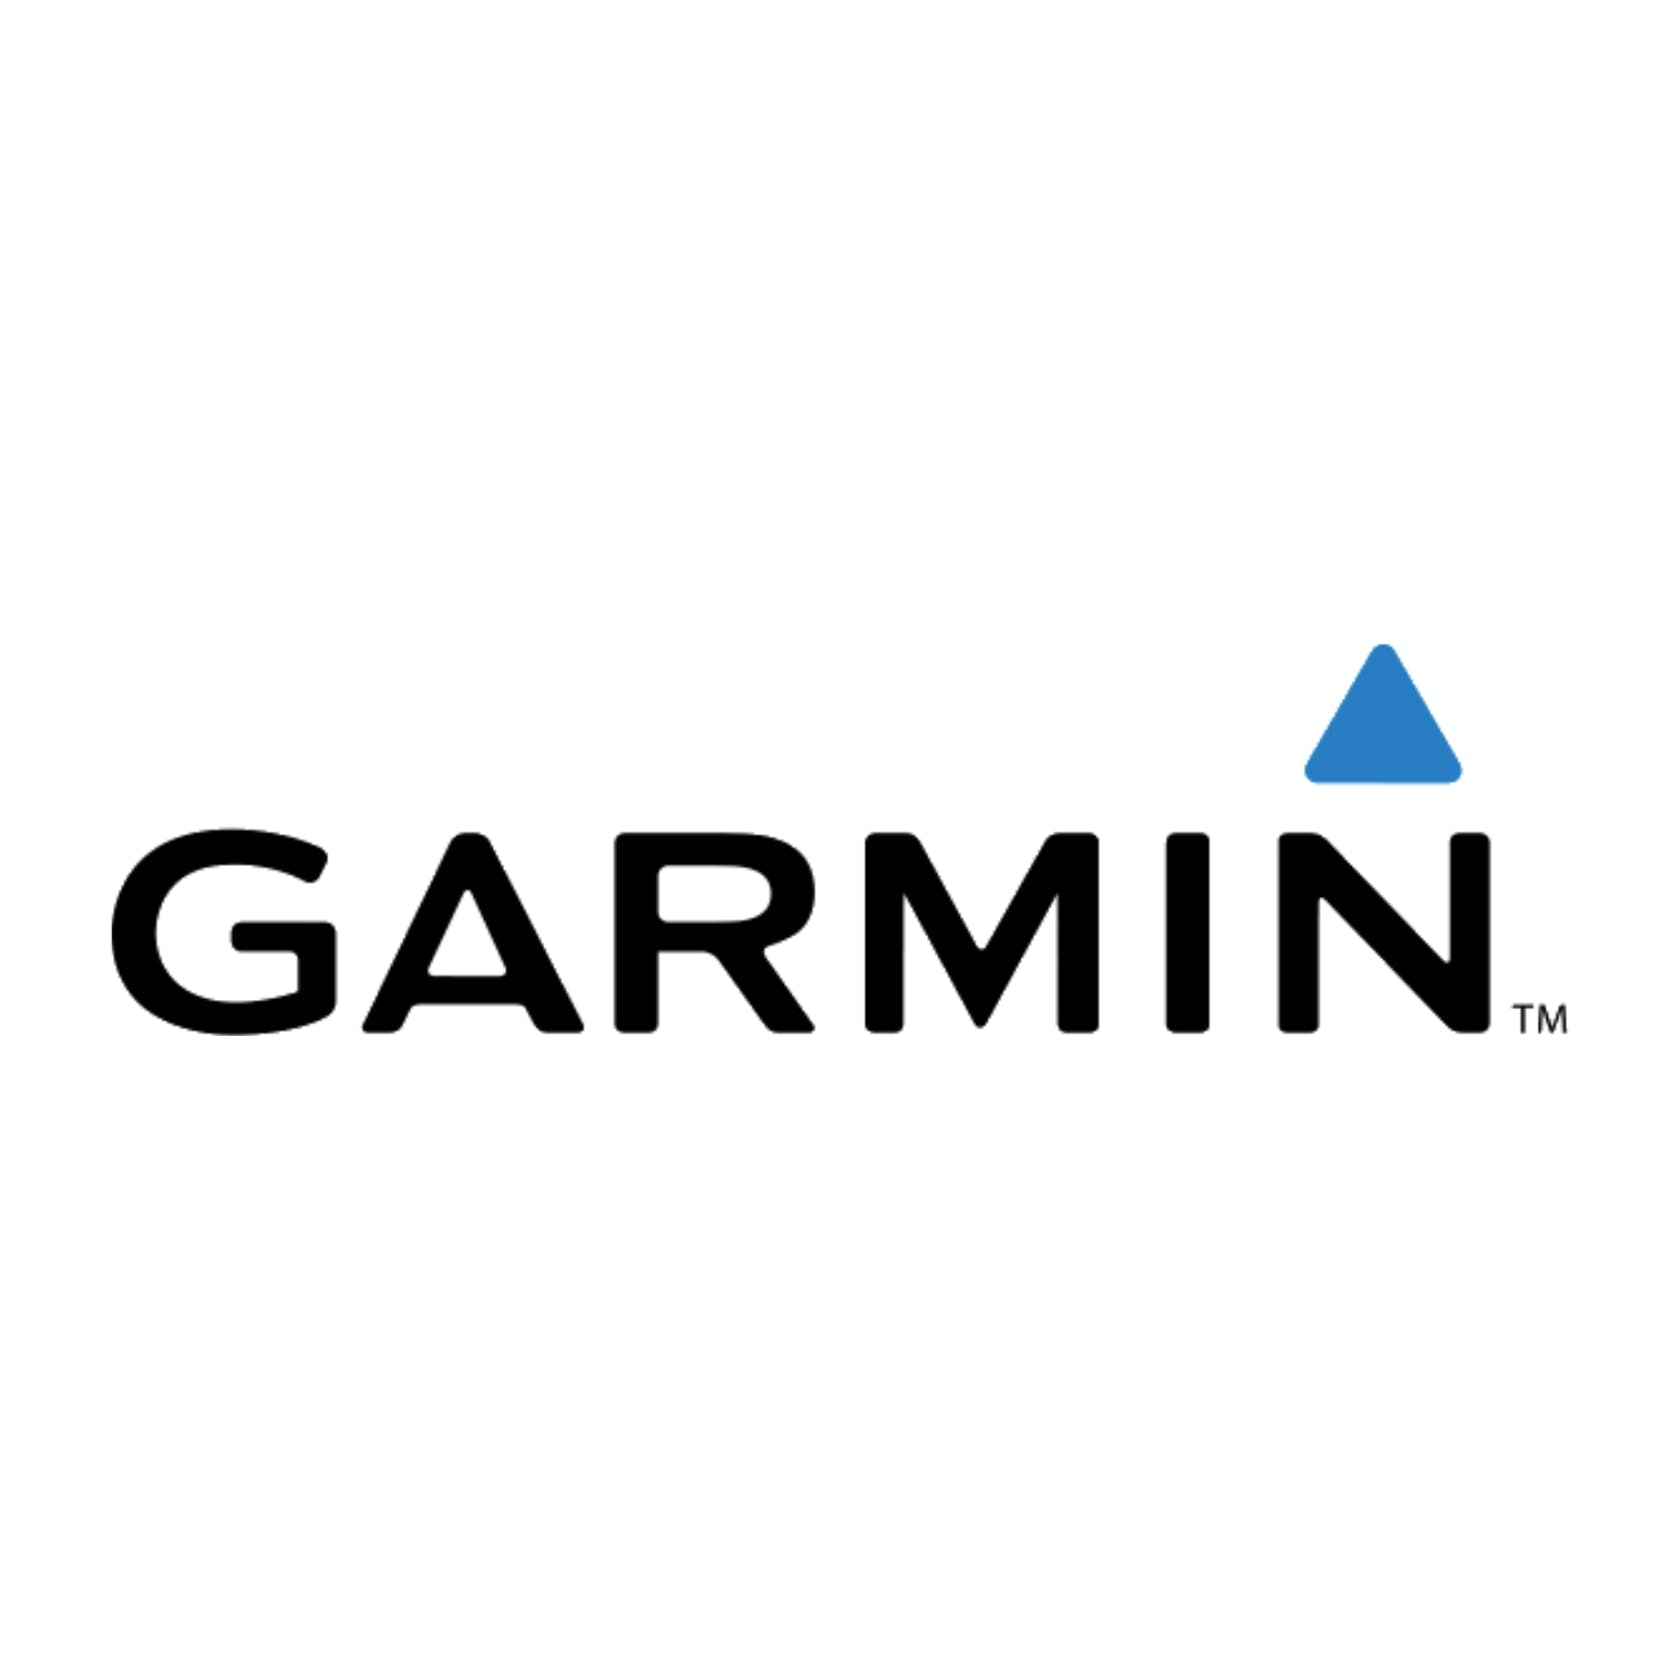 Garmin onlineshop